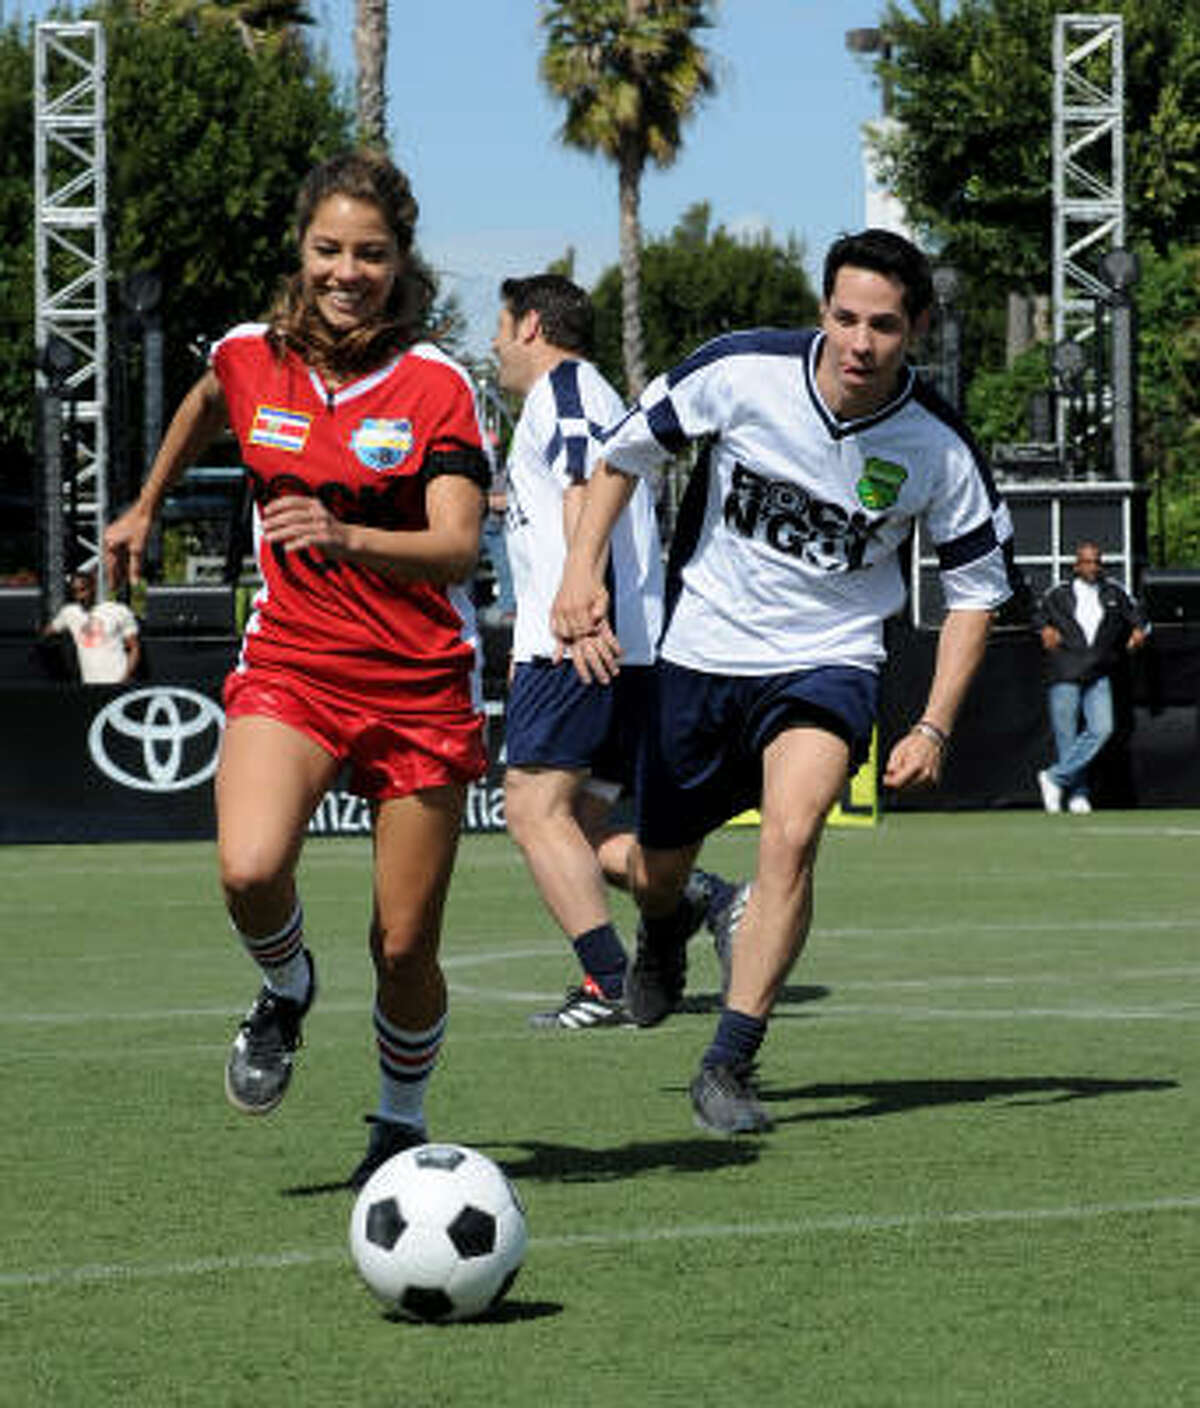 Singer Debi Nova, left, and singer Christian Chavez chase the ball during one of the celebrity matches.